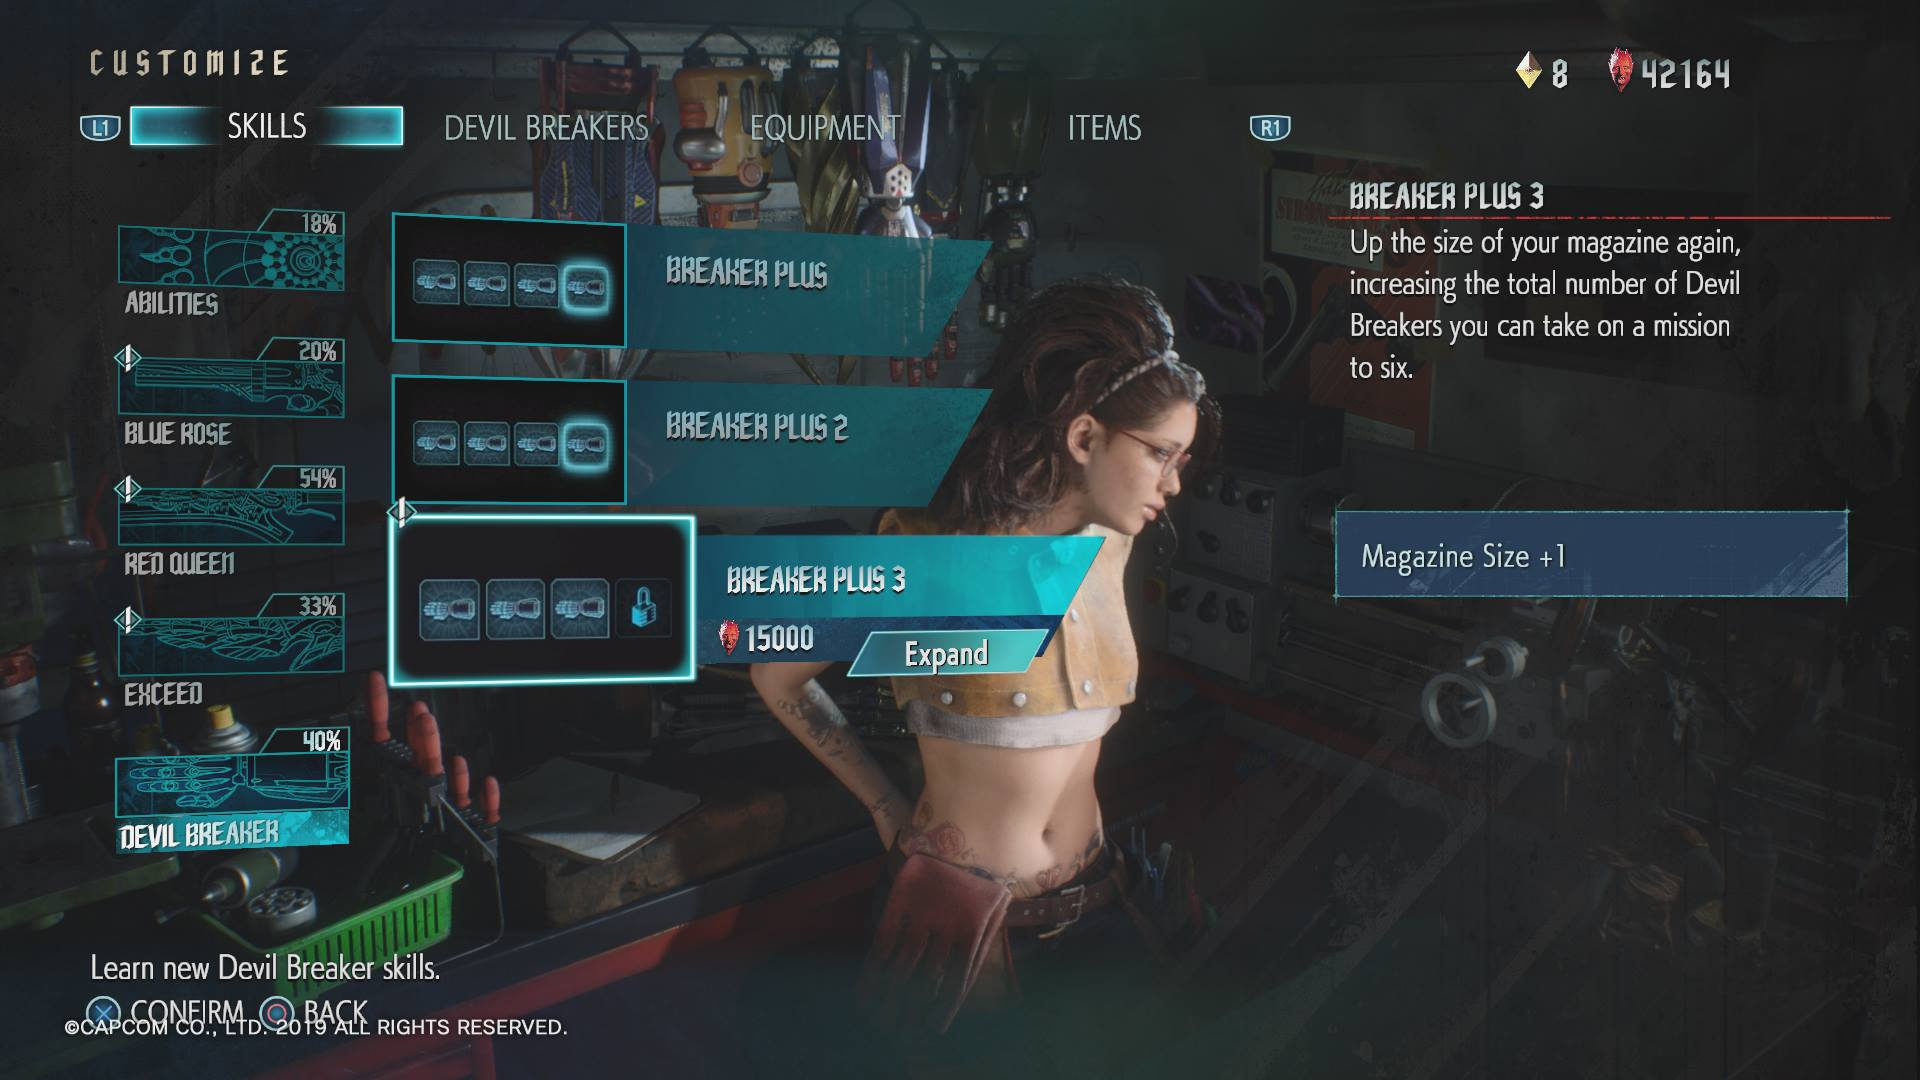 How to swap Devil Breakers in Devil May Cry 5